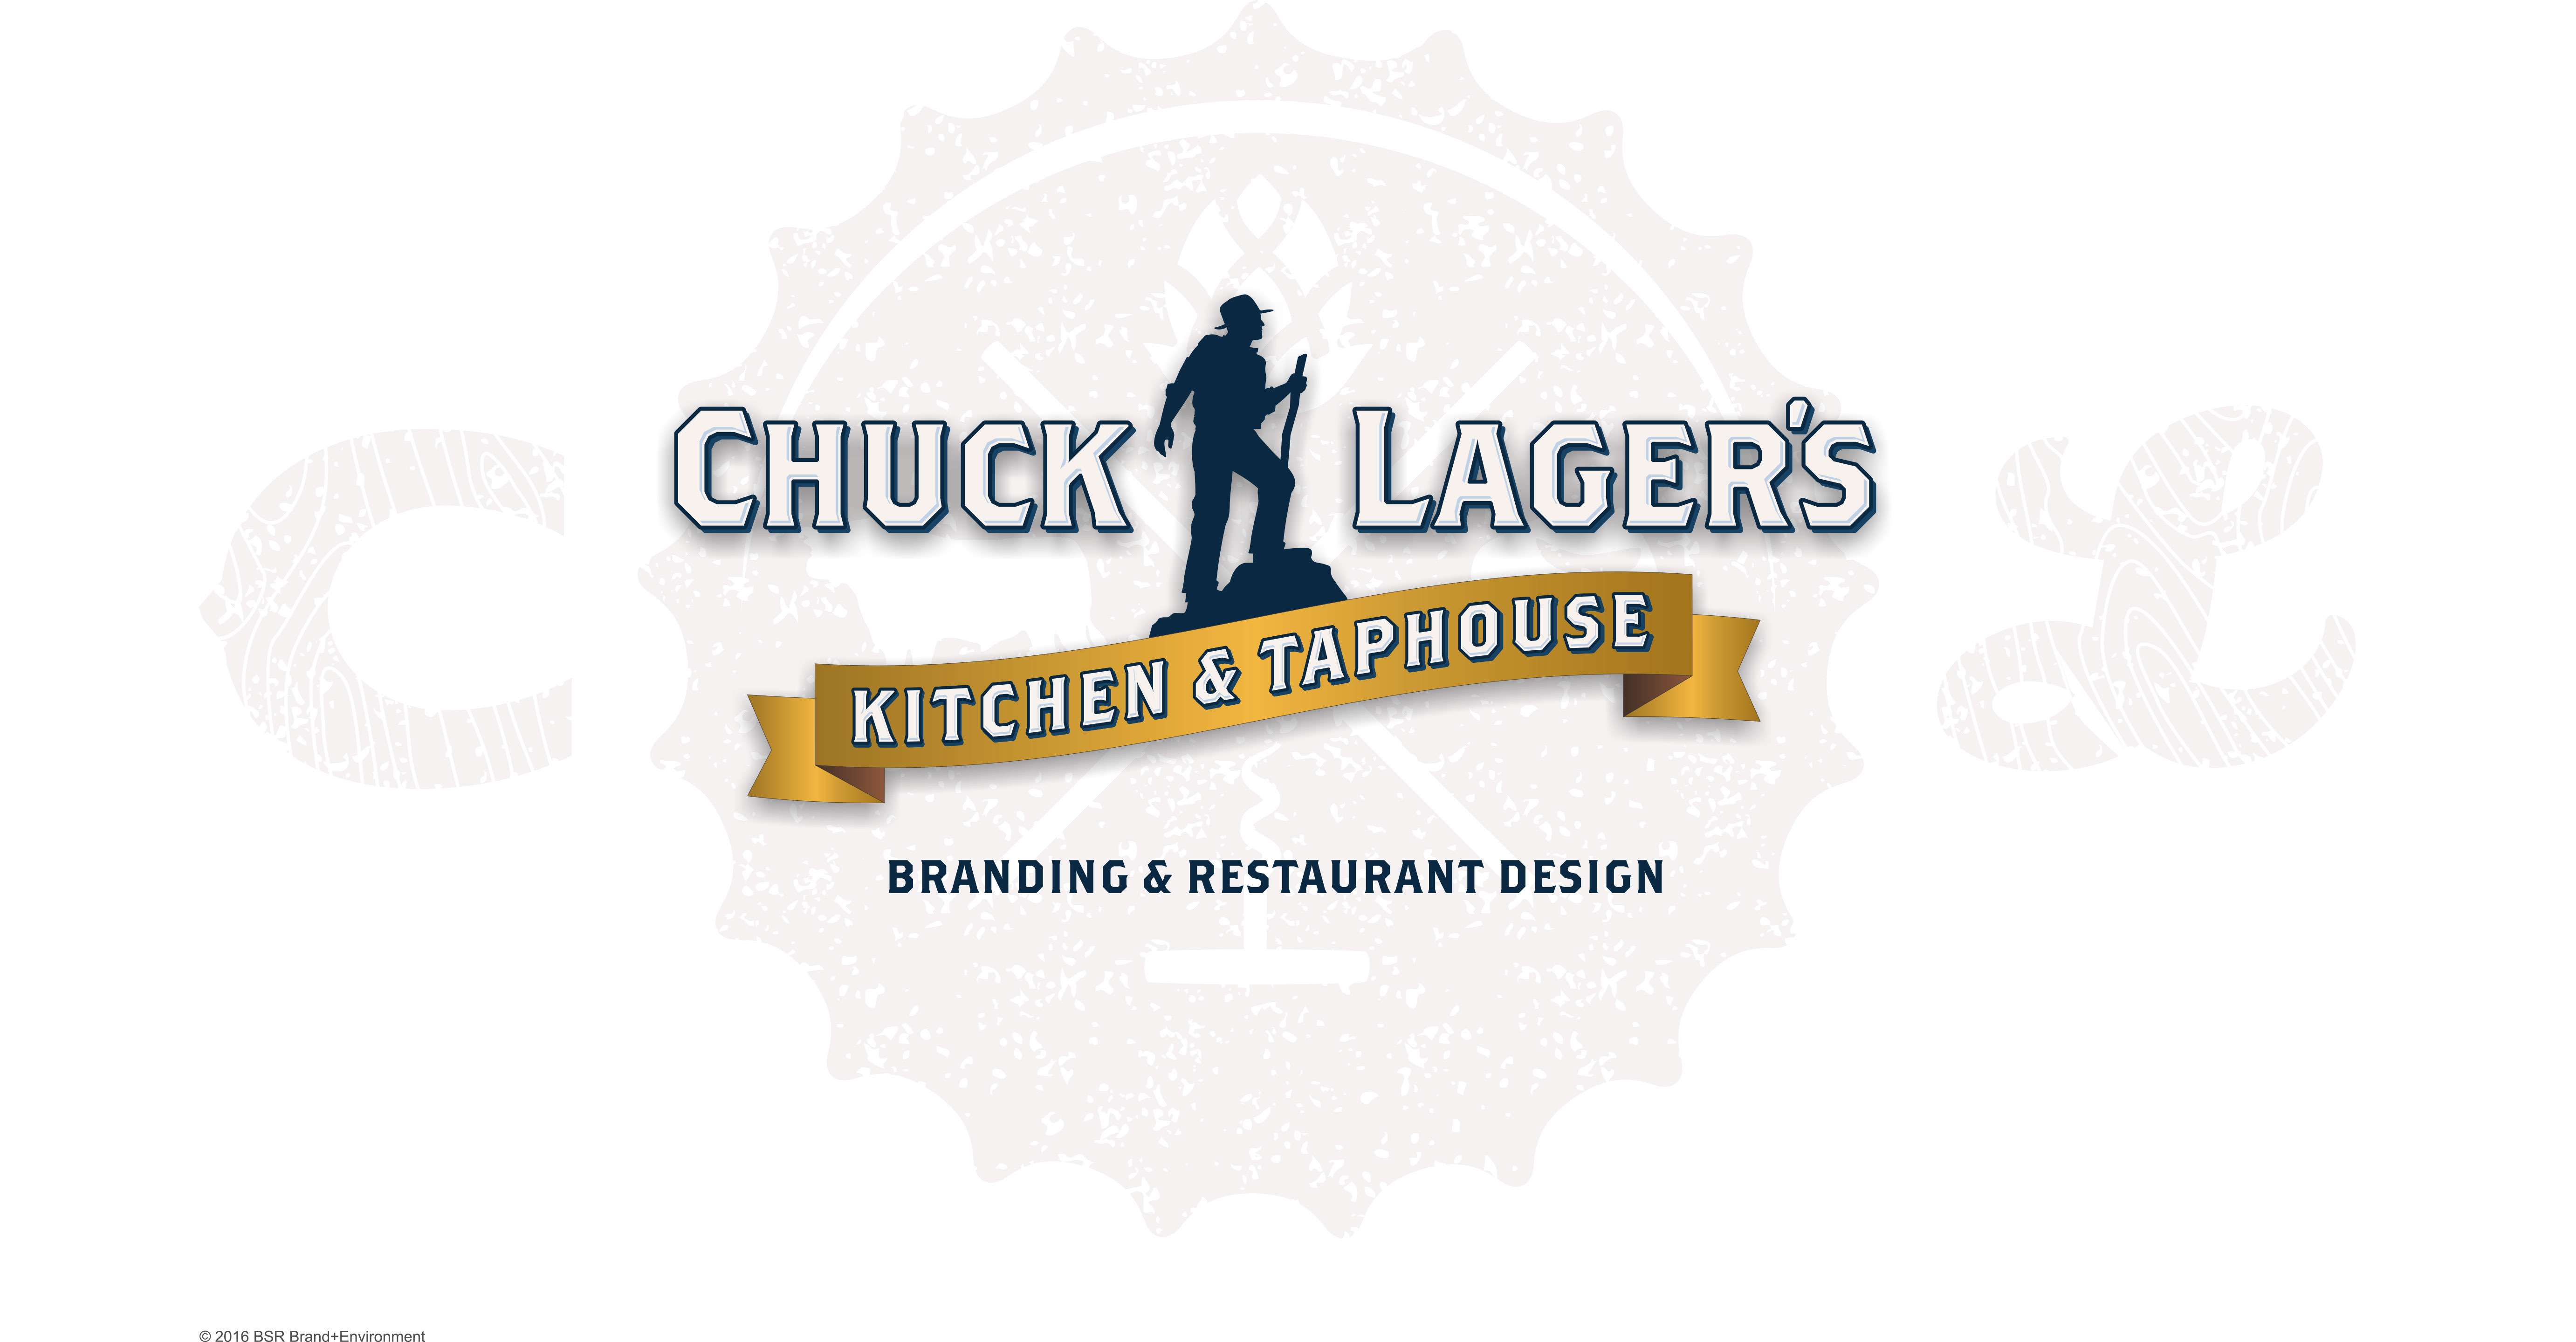 chucklagers